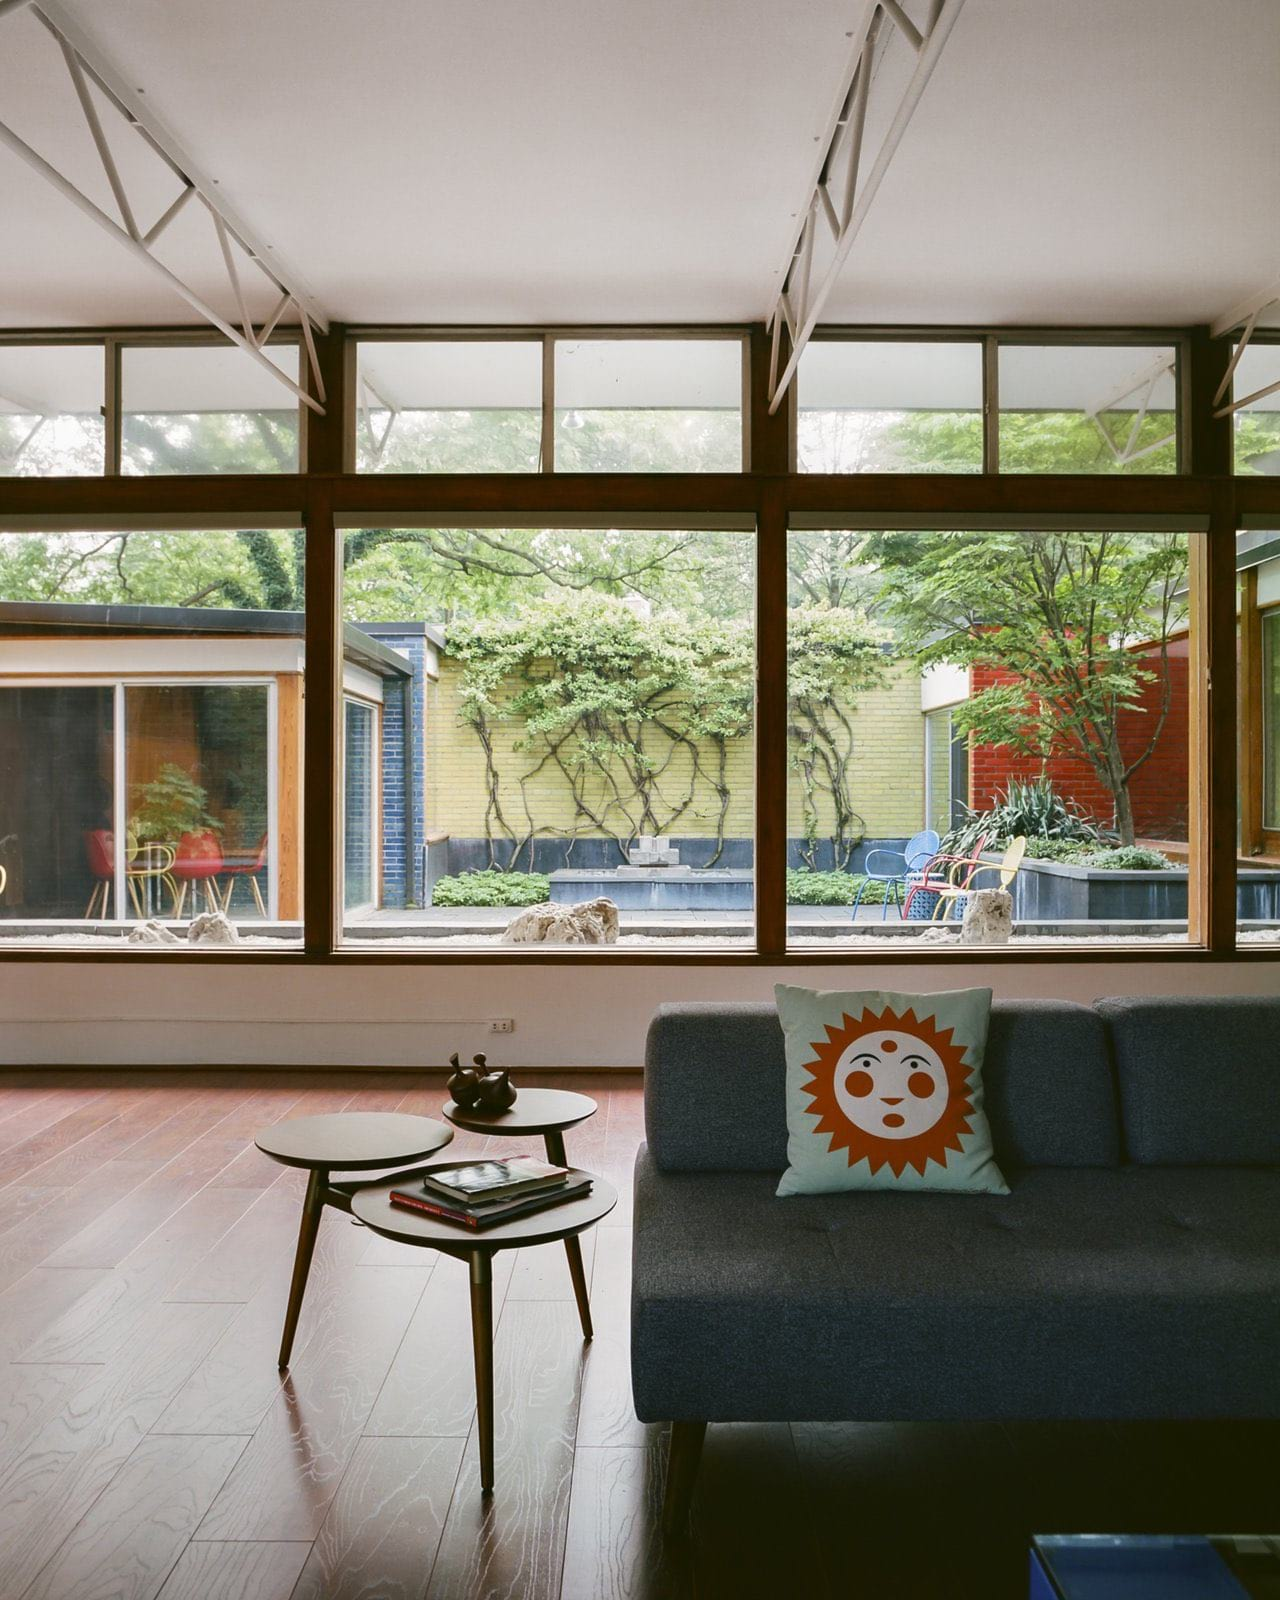 Alexander Girard residence In Michigan - living room garden view